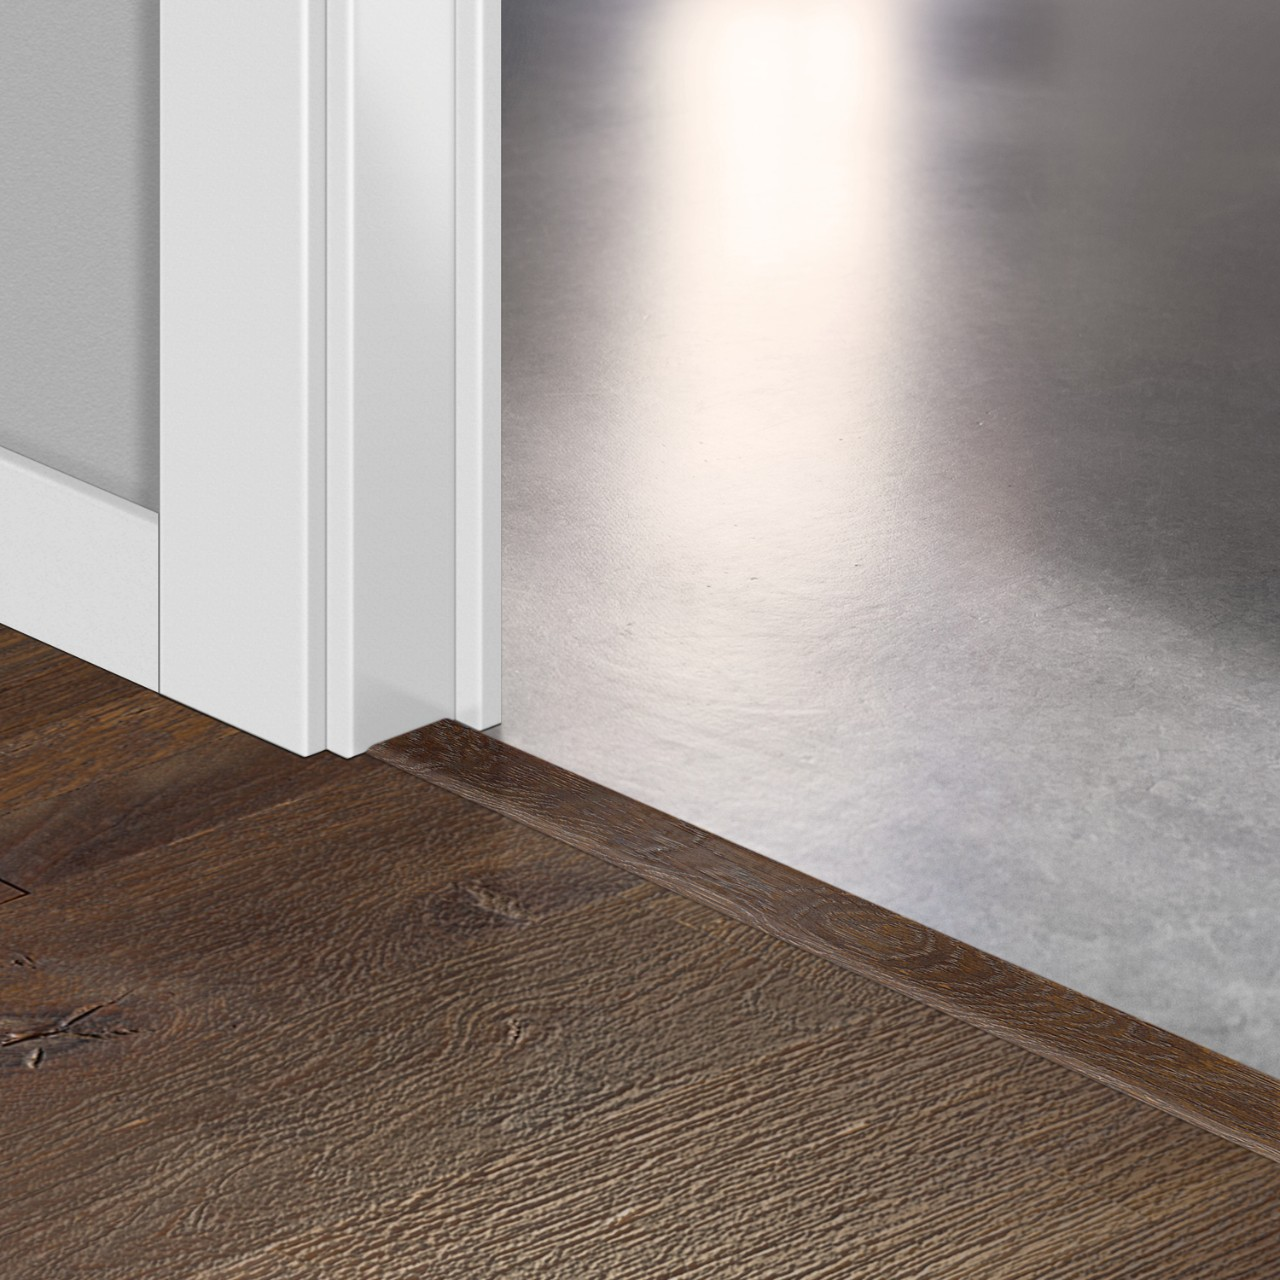 QSWINCP Parquet Accessories Incizo Profile (matching colour) QSWINCP01632